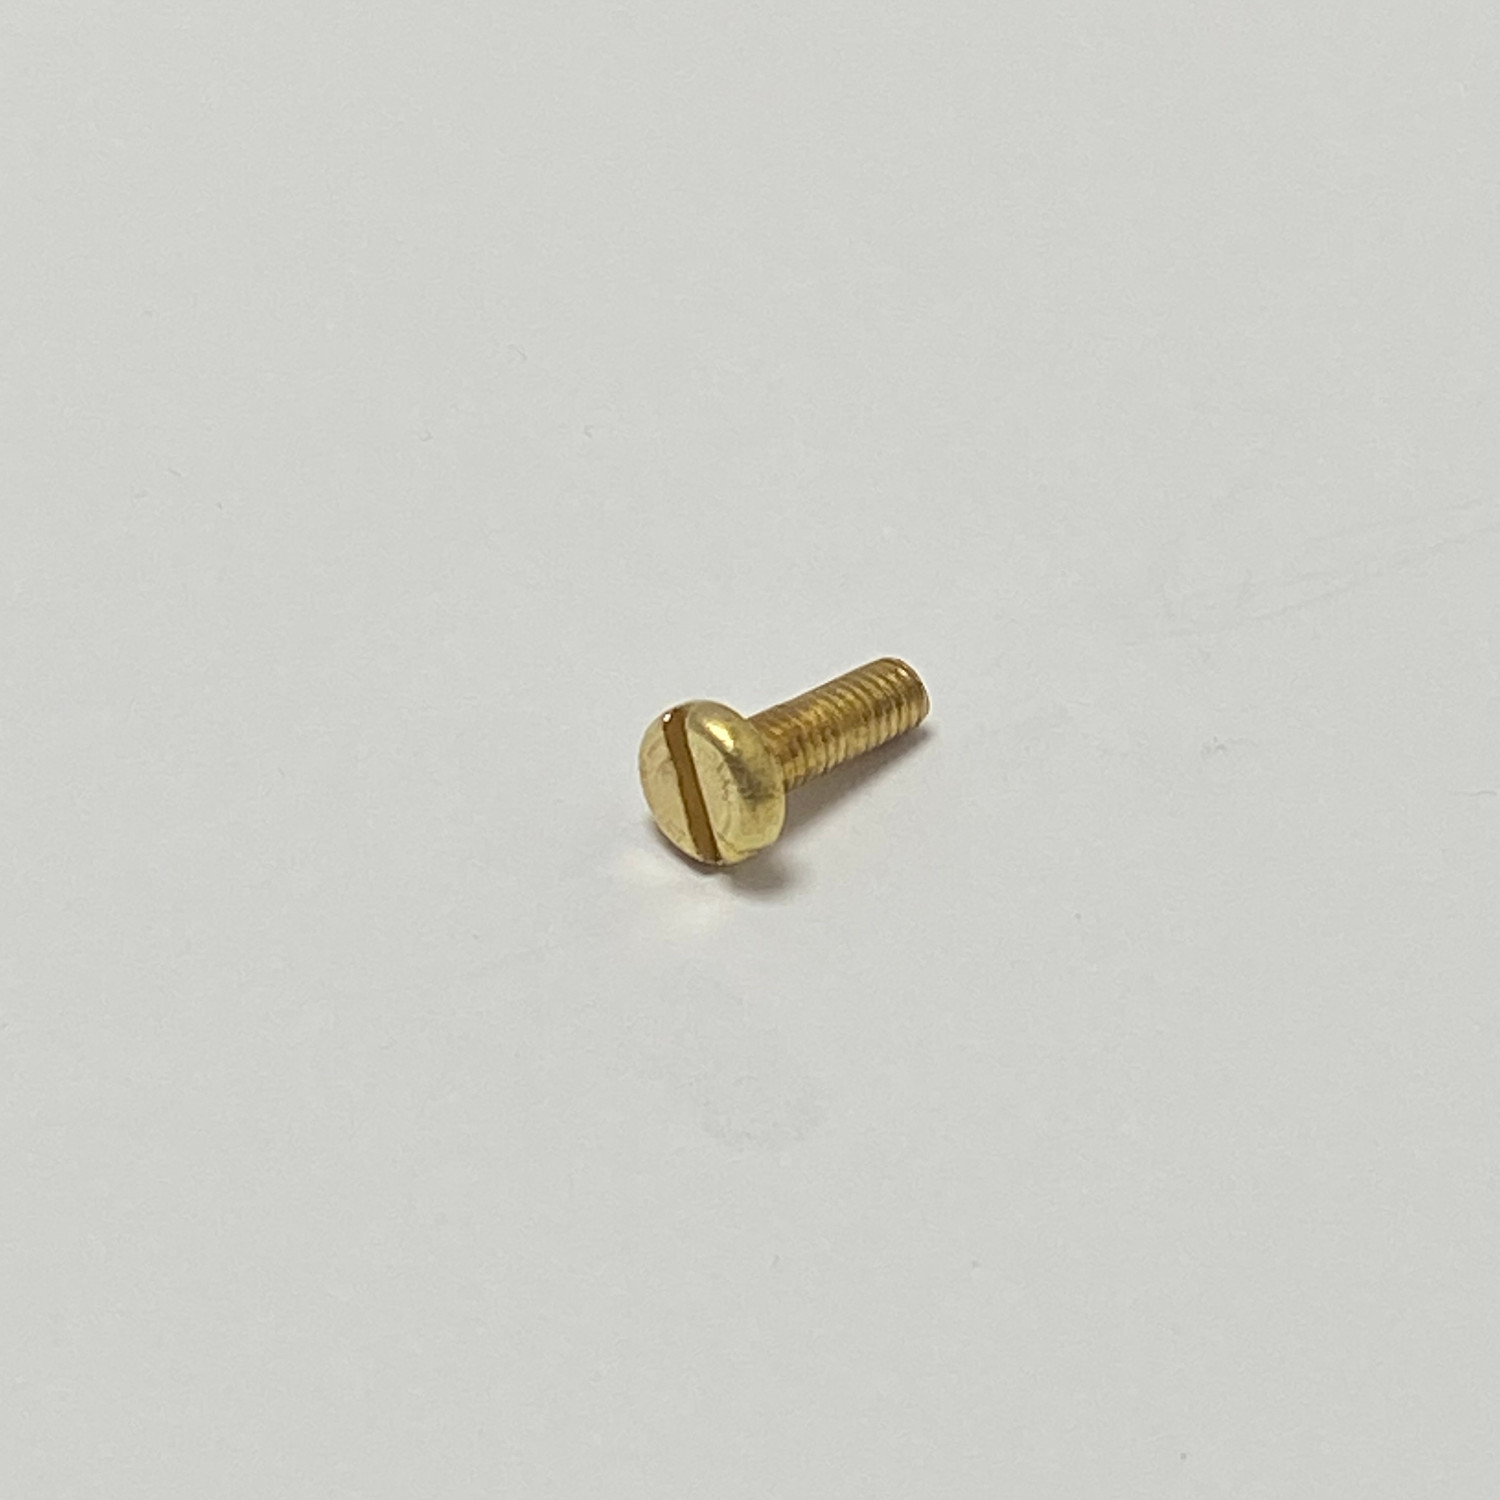 M6 X 70 BRASS SLOTTED CHEESE SCREWS